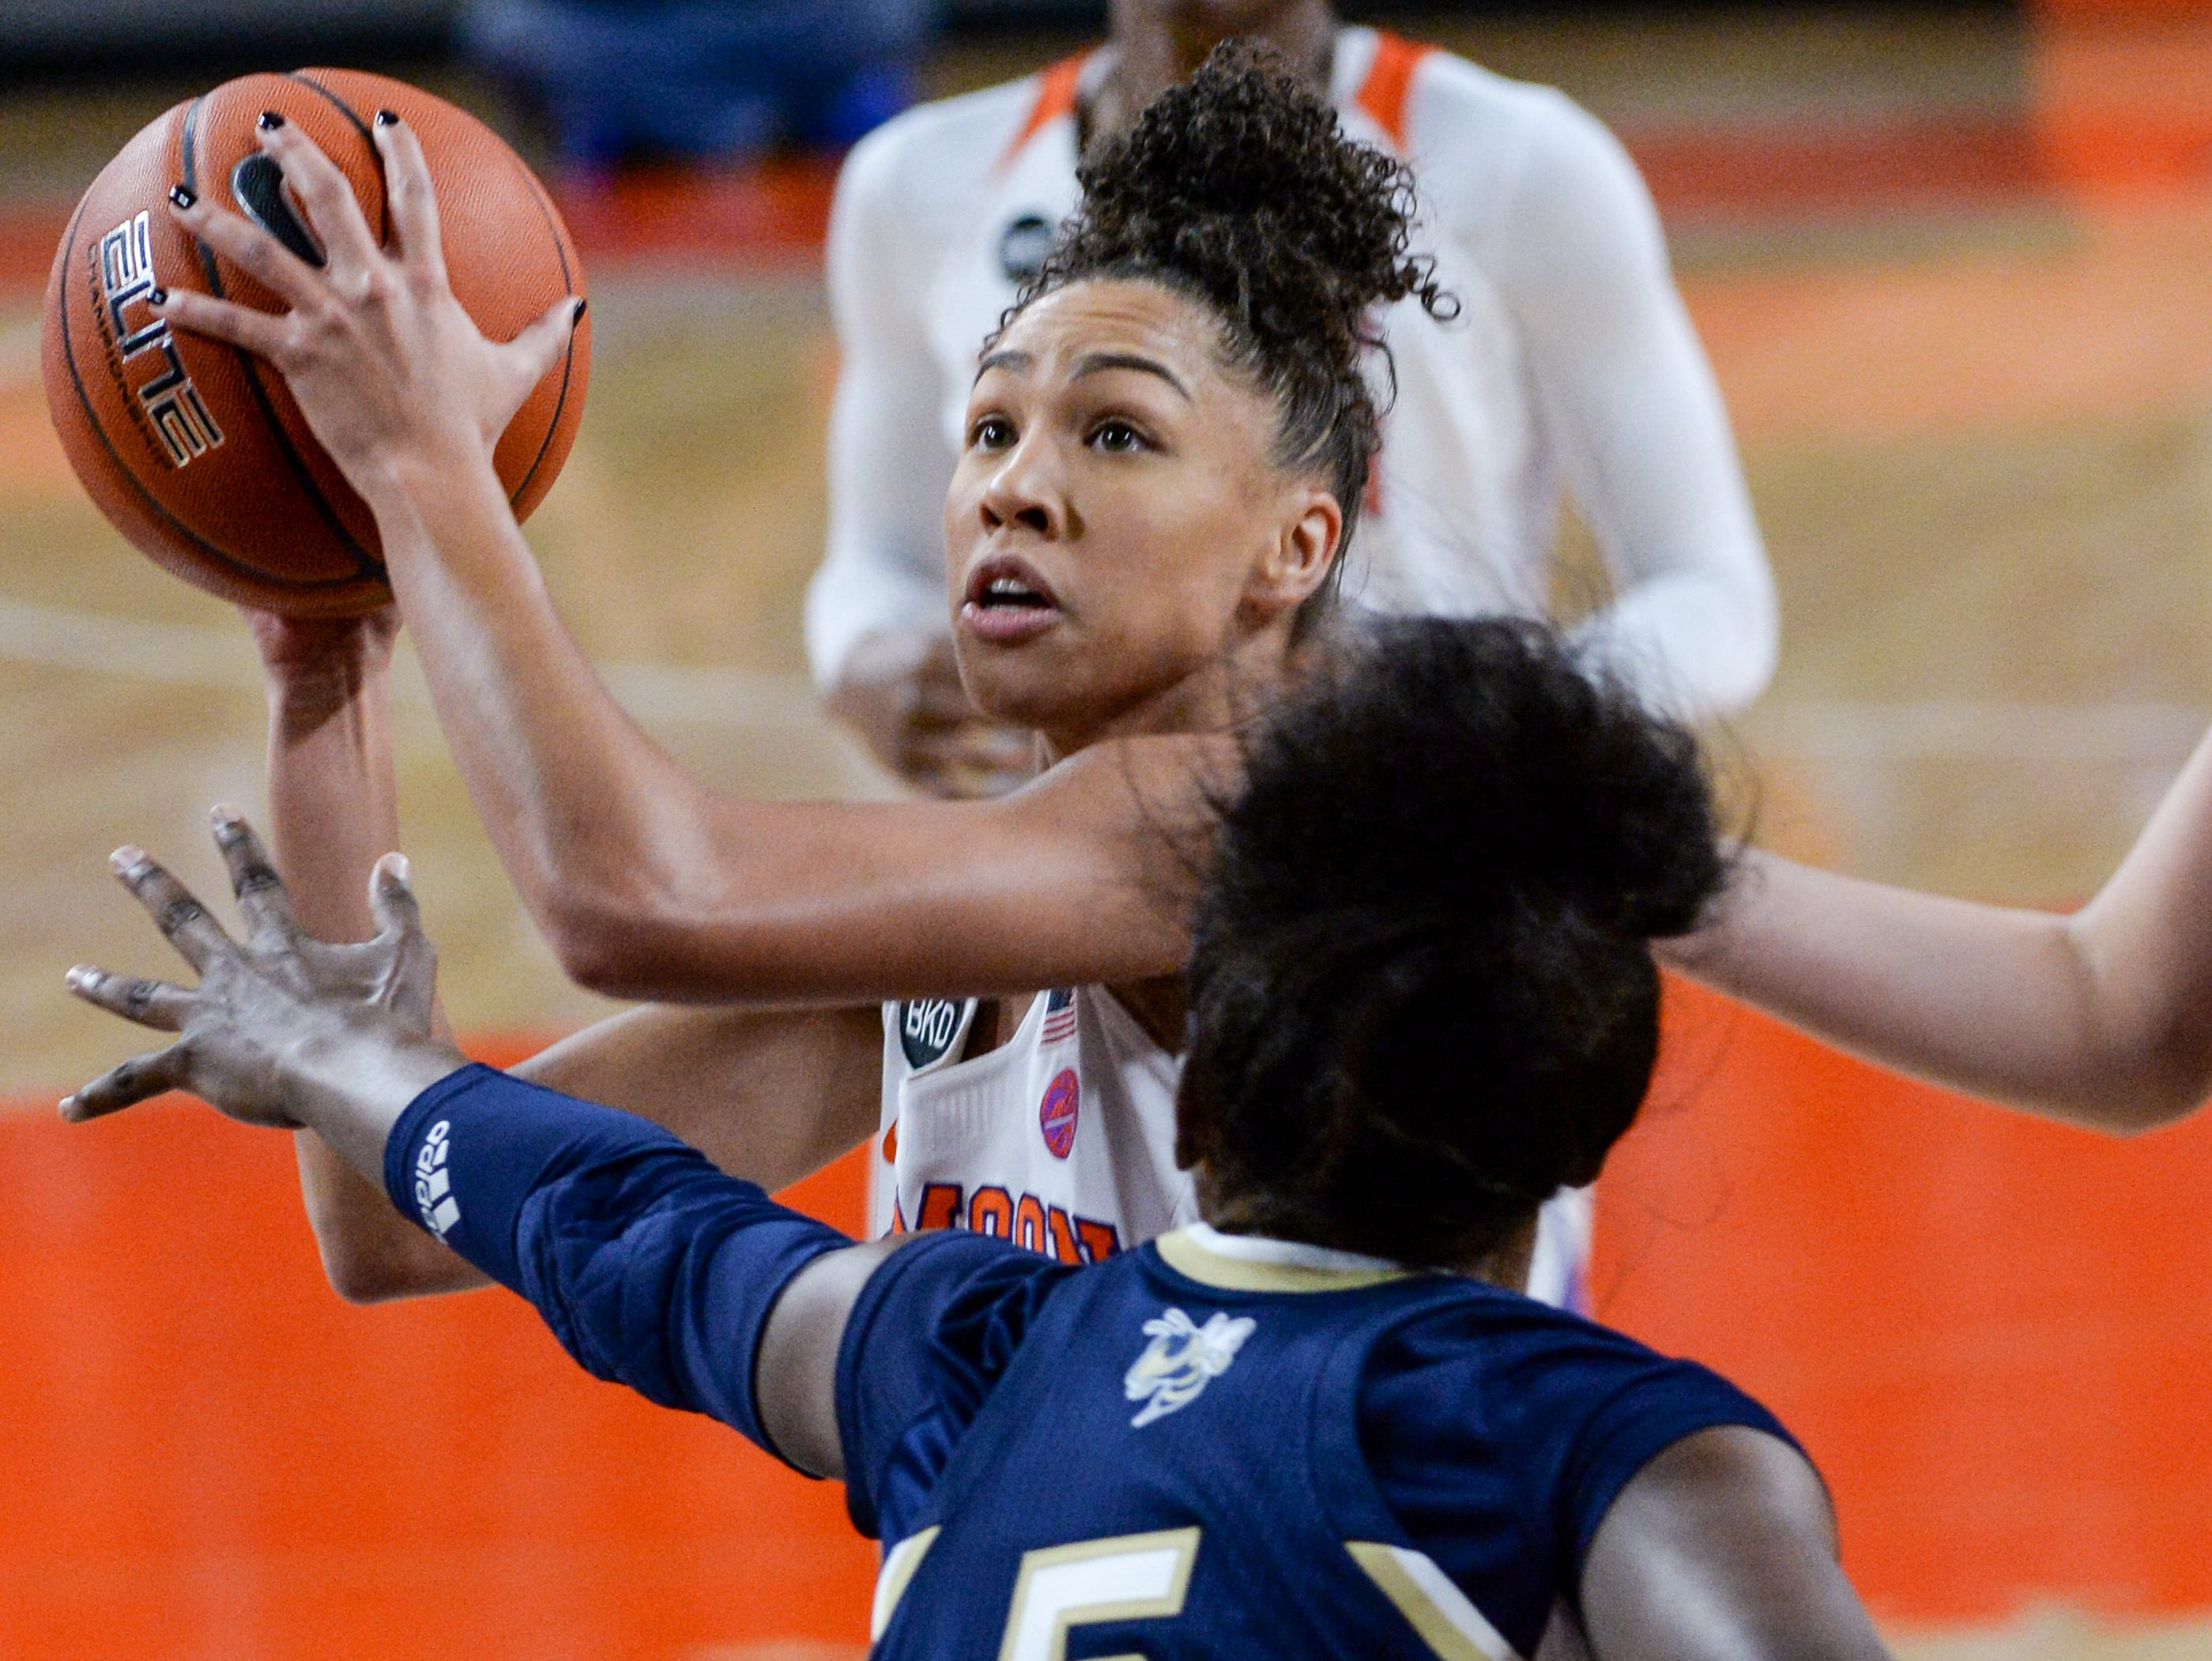 Clemson guard Danielle Edwards(5) shoots near Georgia Tech guard Liz Balogun(5) during the second quarter at Littlejohn Coliseum in Clemson Thursday, January 17, 2019.